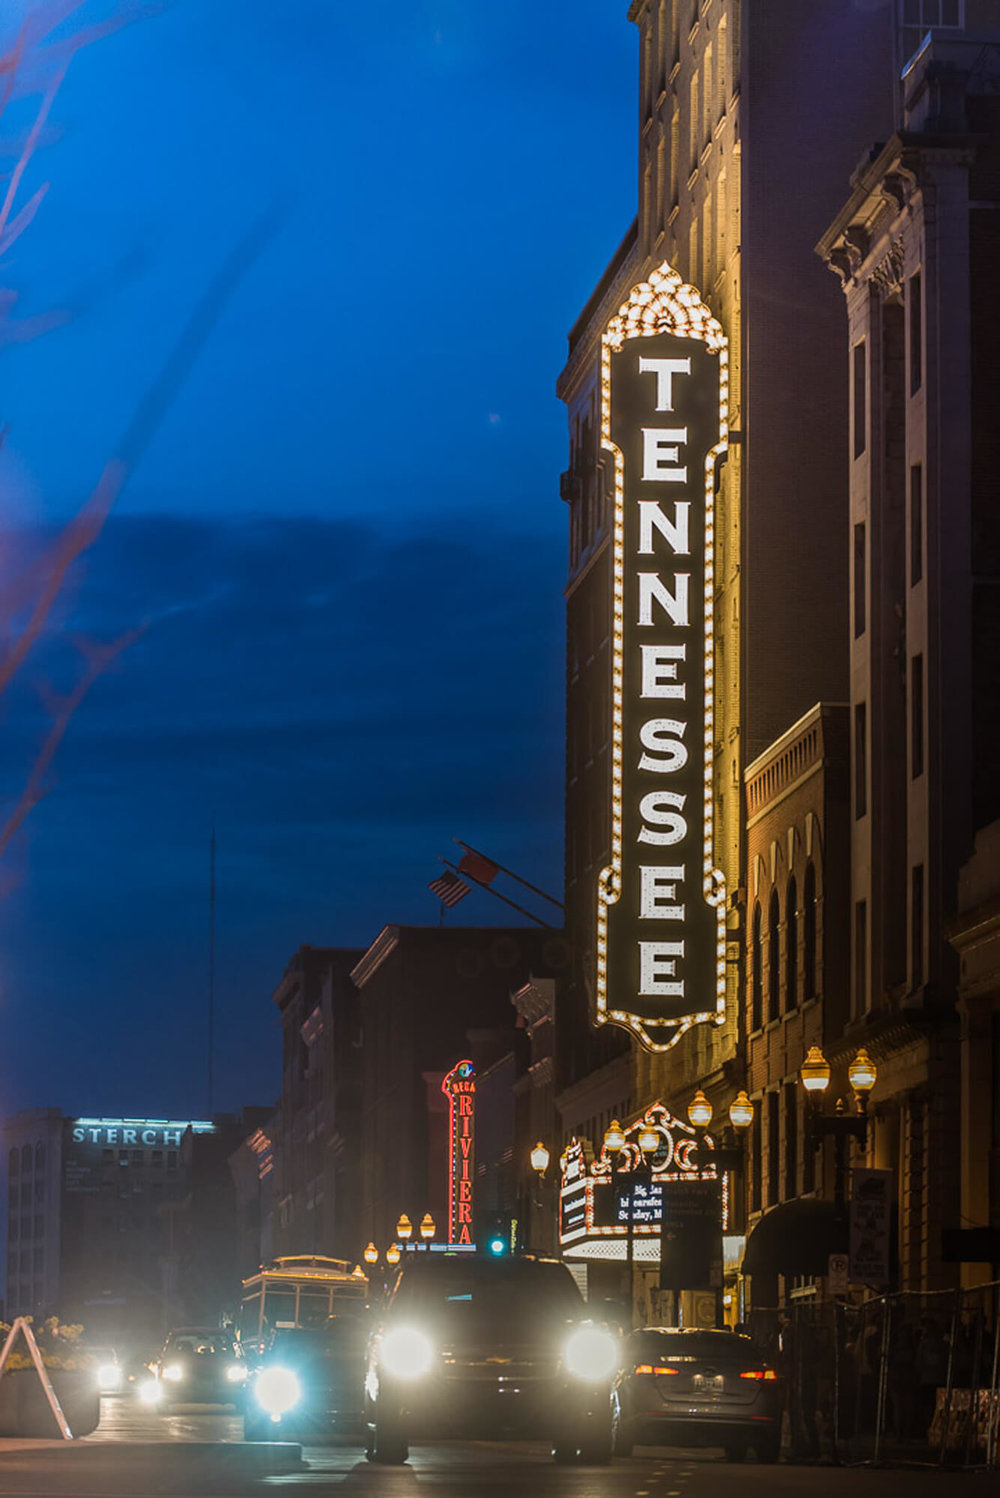 Tennessee Theatre. Photo by David Simchock